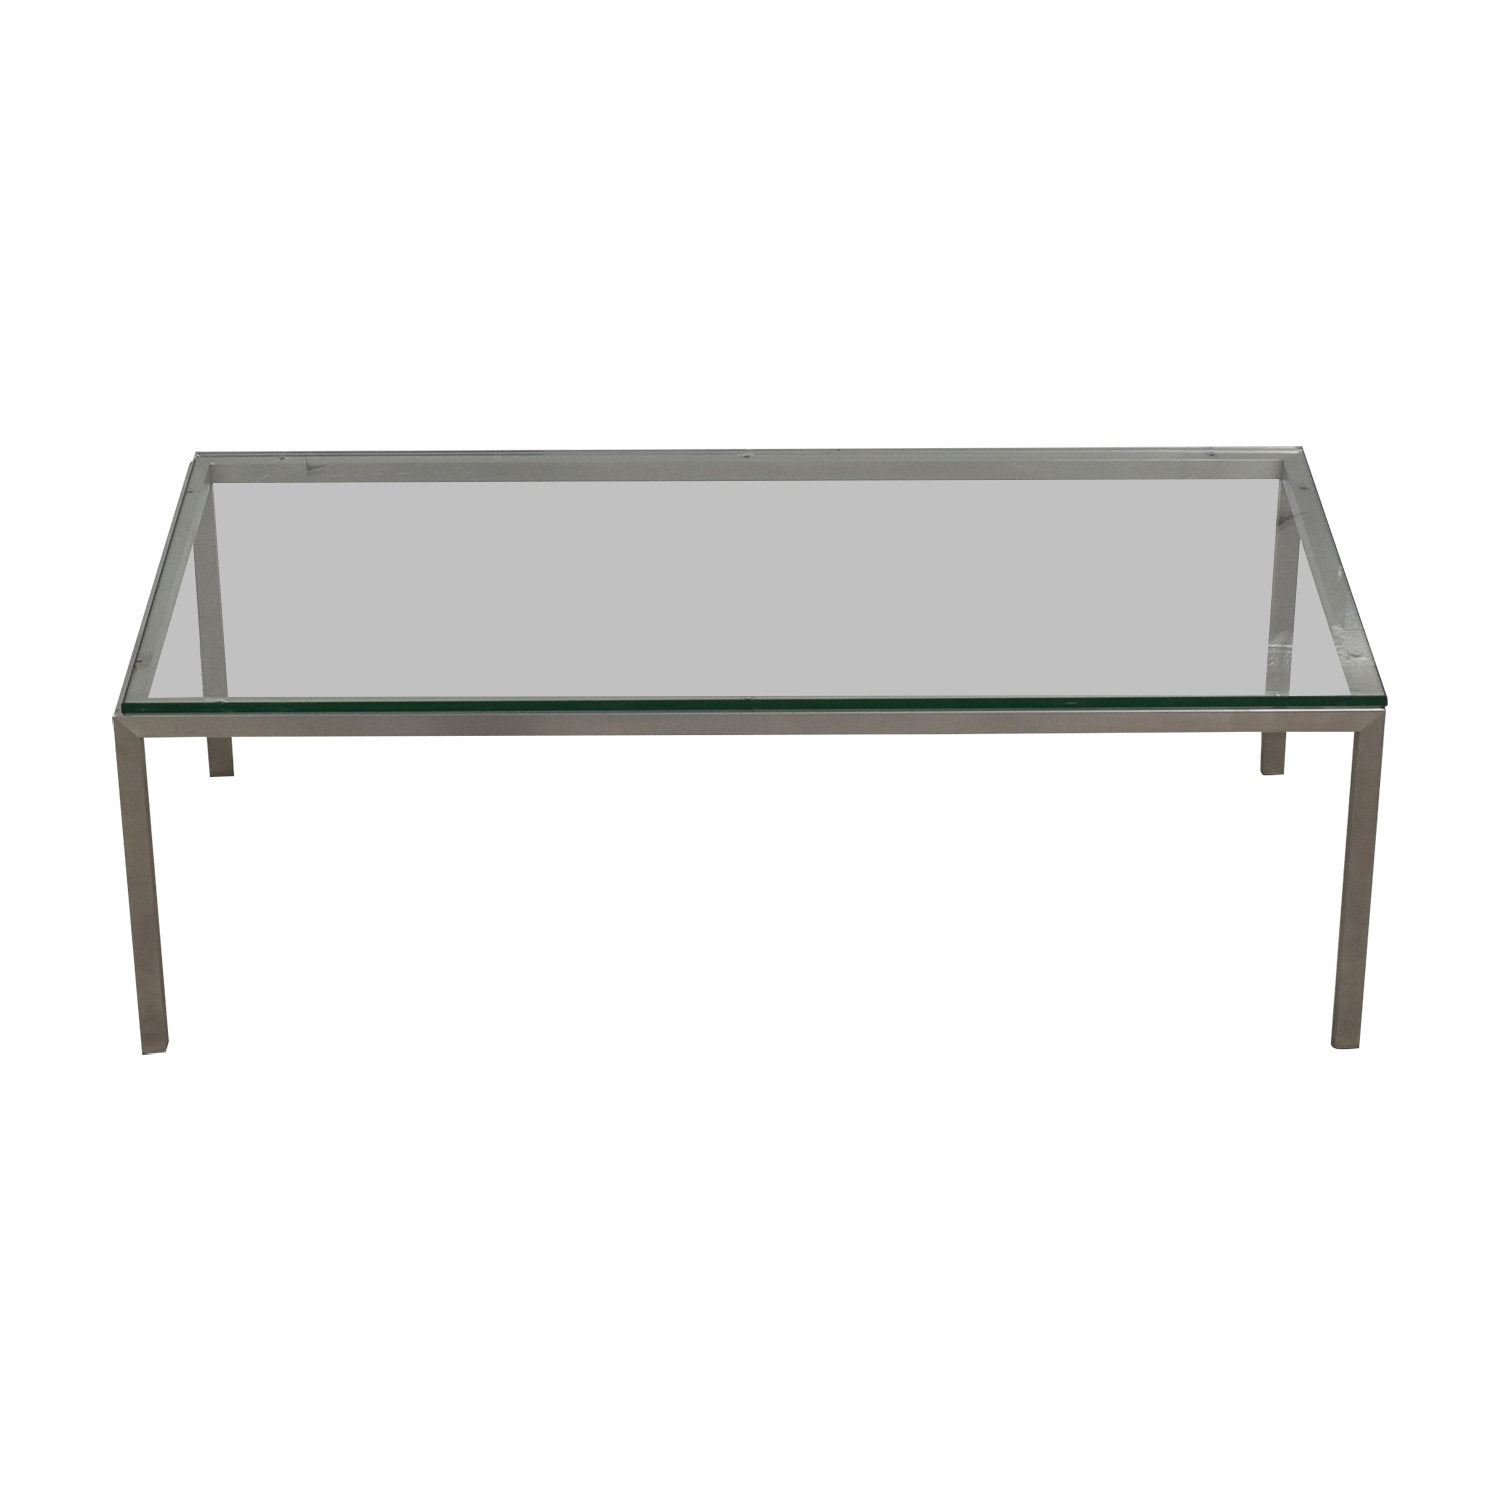 Room and Board Room & Board Portica Glass and Chrome Coffee Table used